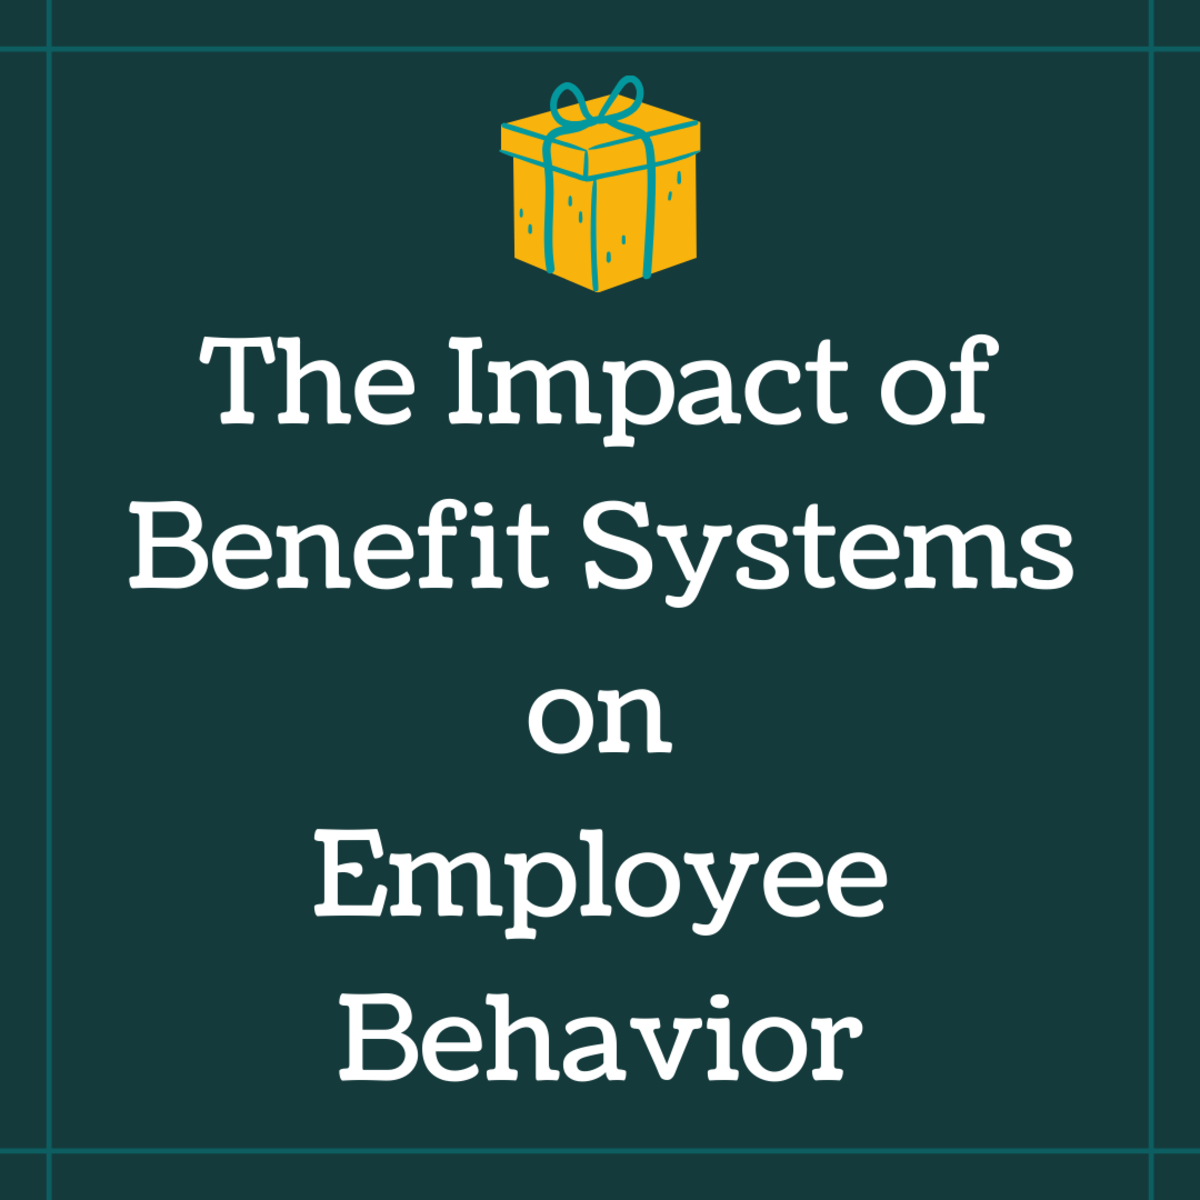 Learn more about the types of benefit systems used in the workplace and how they can affect employee behavior and motivation.